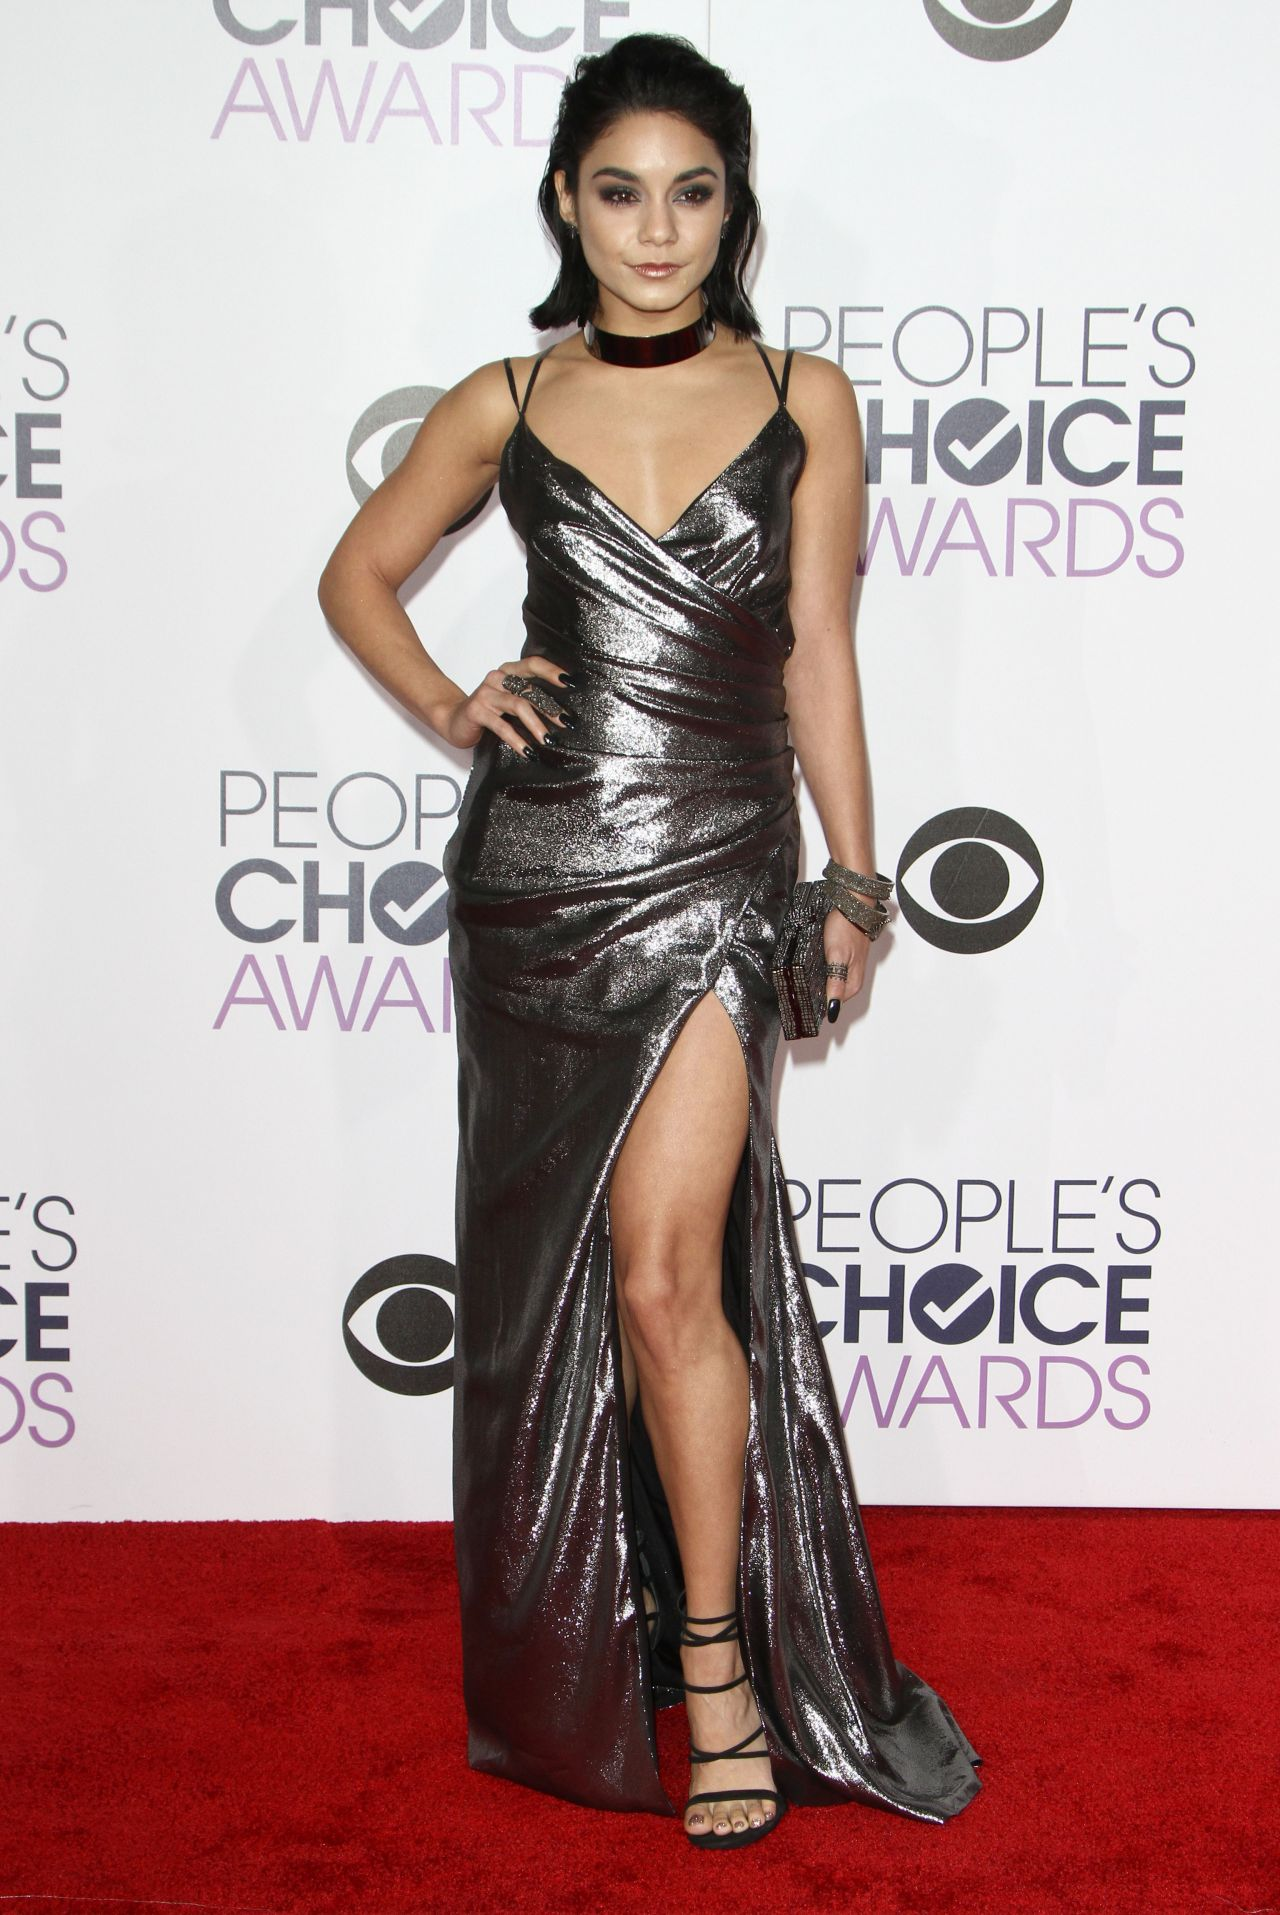 vanessa-hudgens-2016-people-s-choice-awards-in-microsoft-theater-in-los-angeles-1